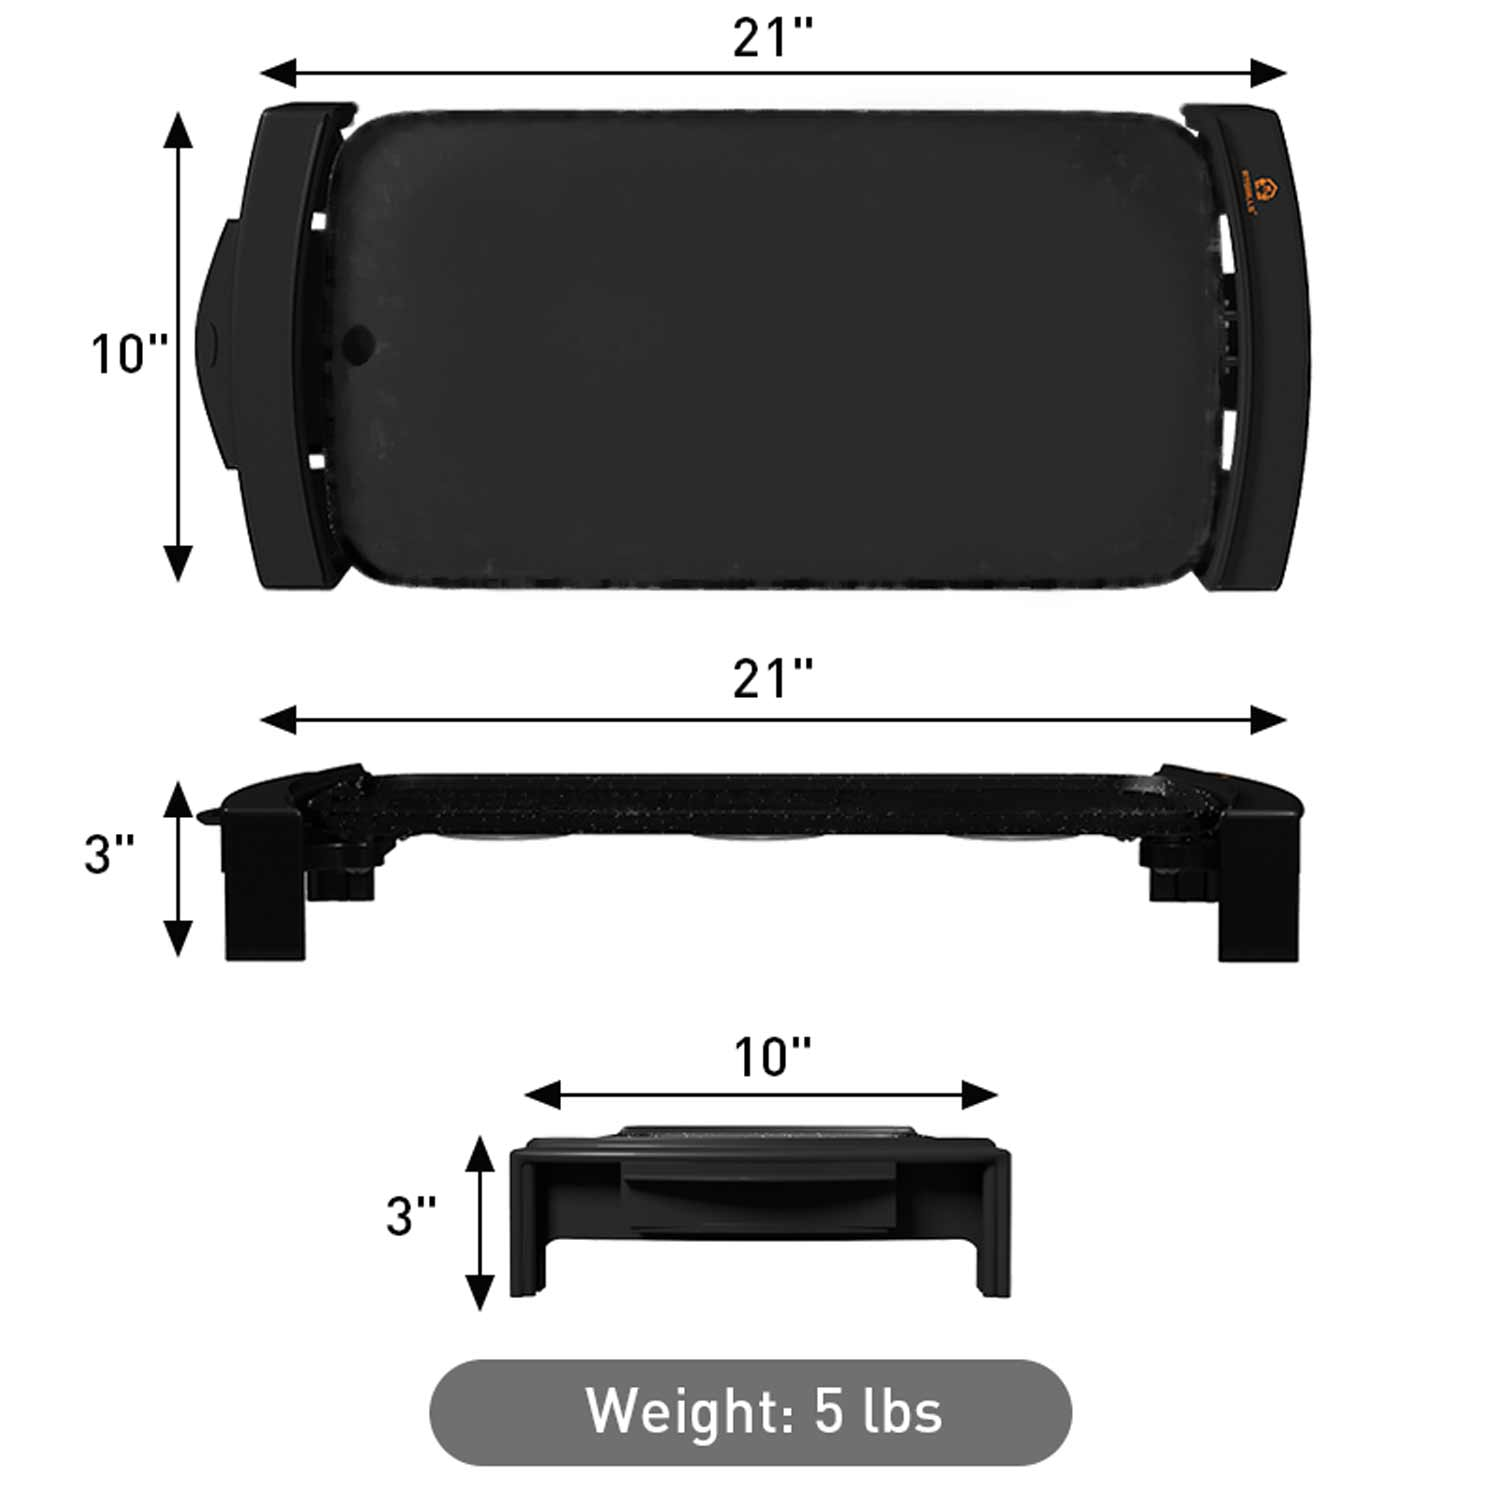 Black griddle color weight and dimensions